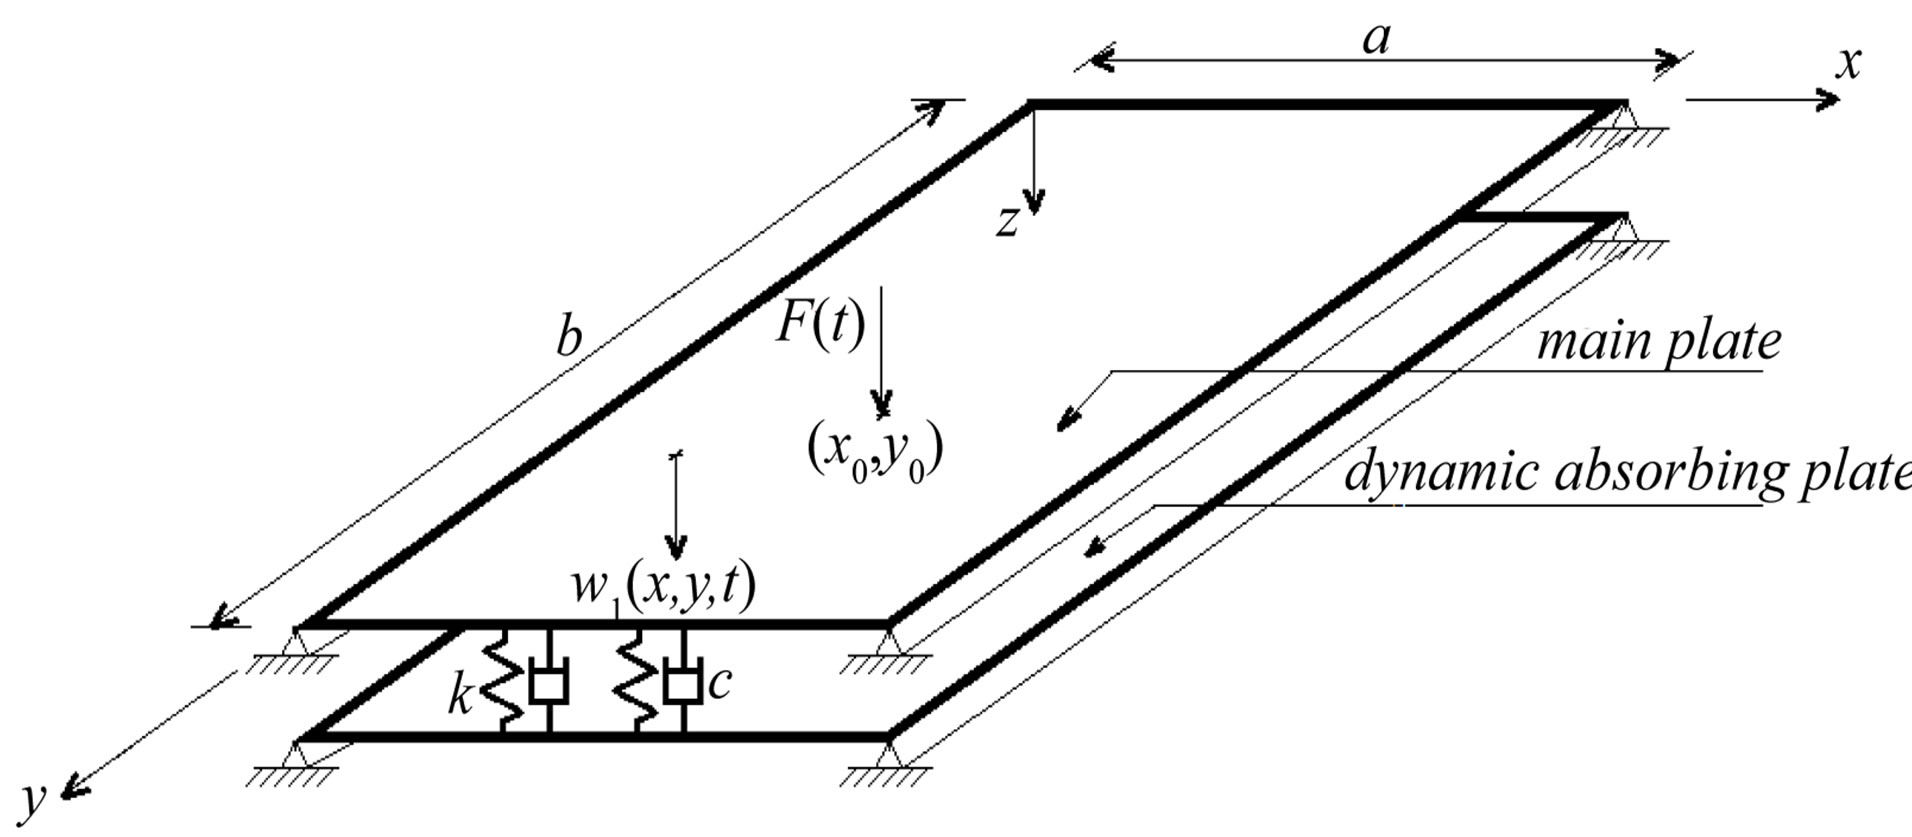 Vibration Control of a Plate Subjected to Impulsive Force